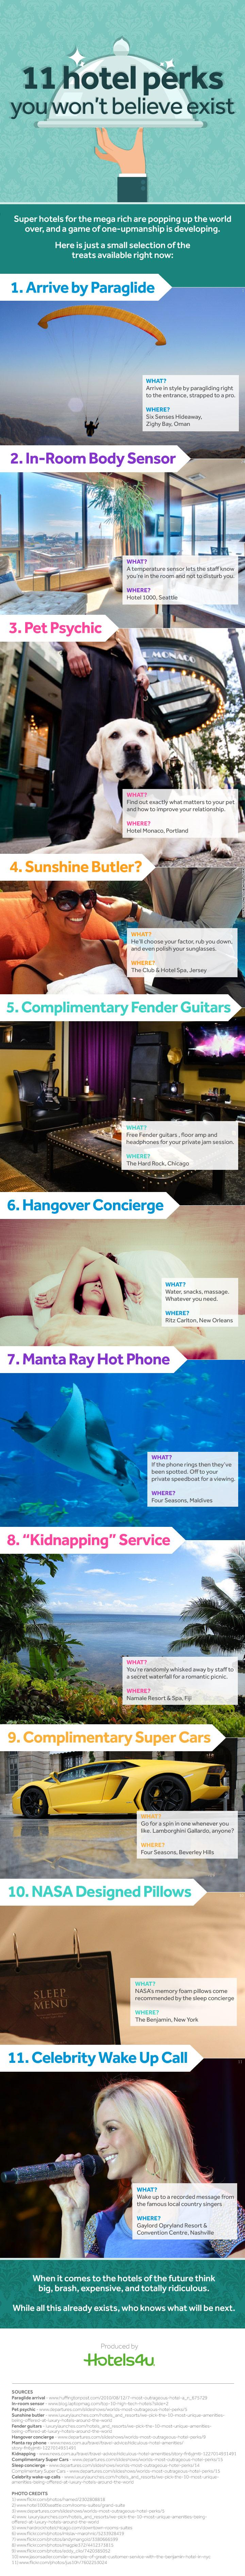 11-hotel-perks-infographic